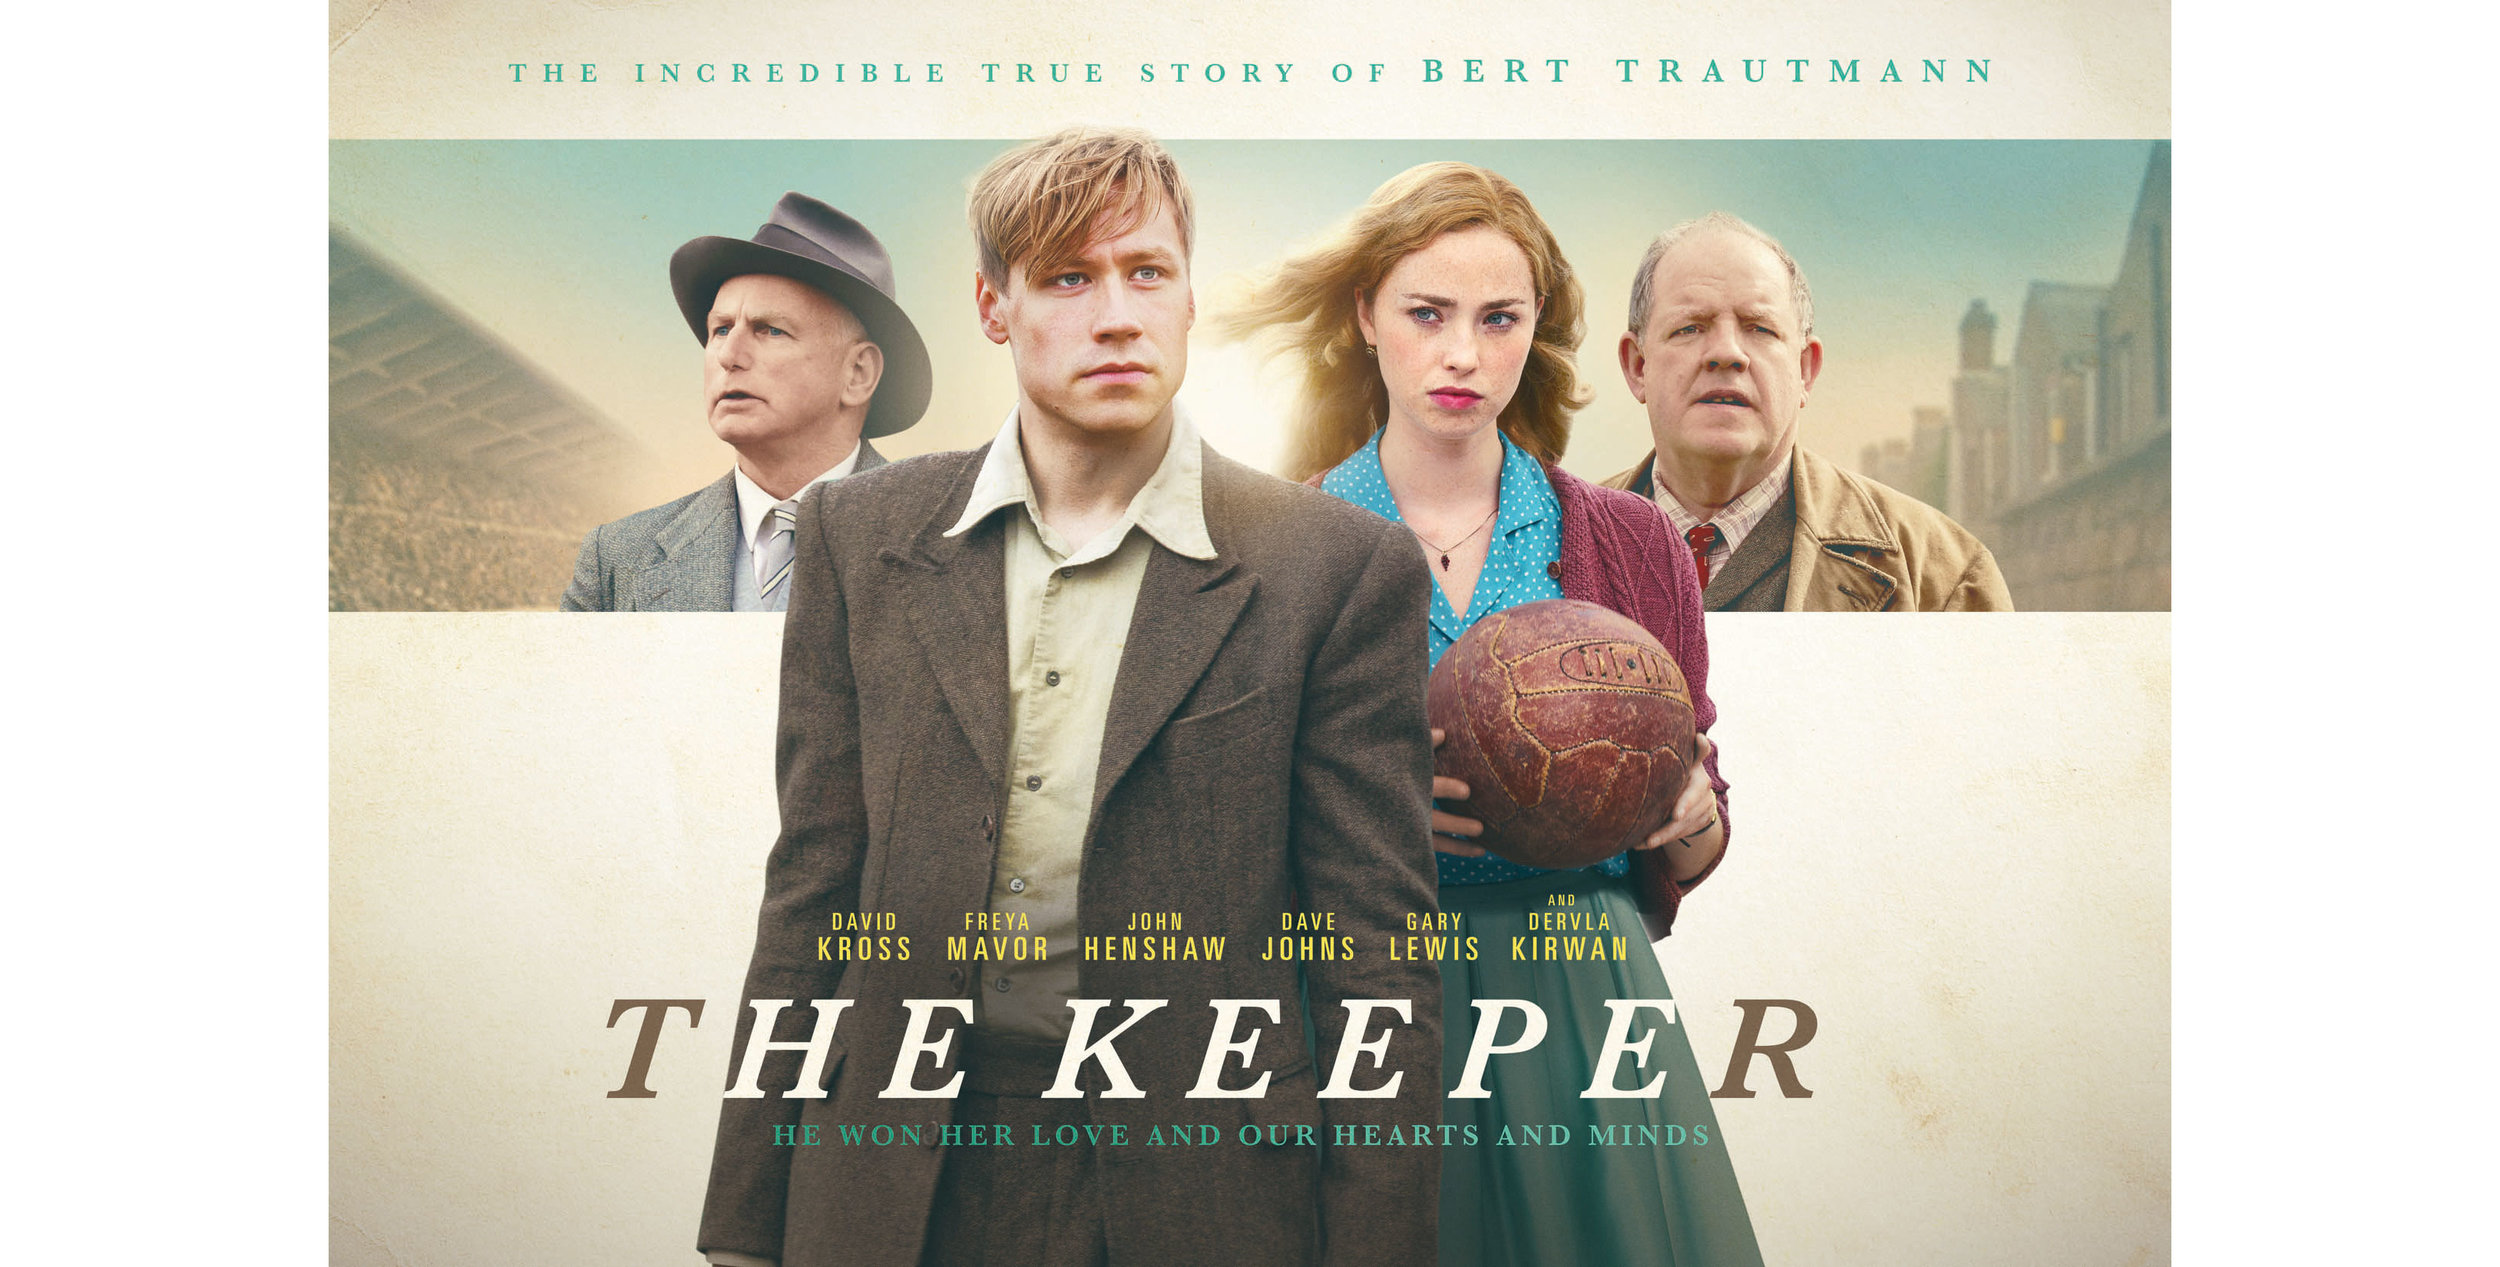 THE_KEEPER_QUAD_V0af740x375.jpg